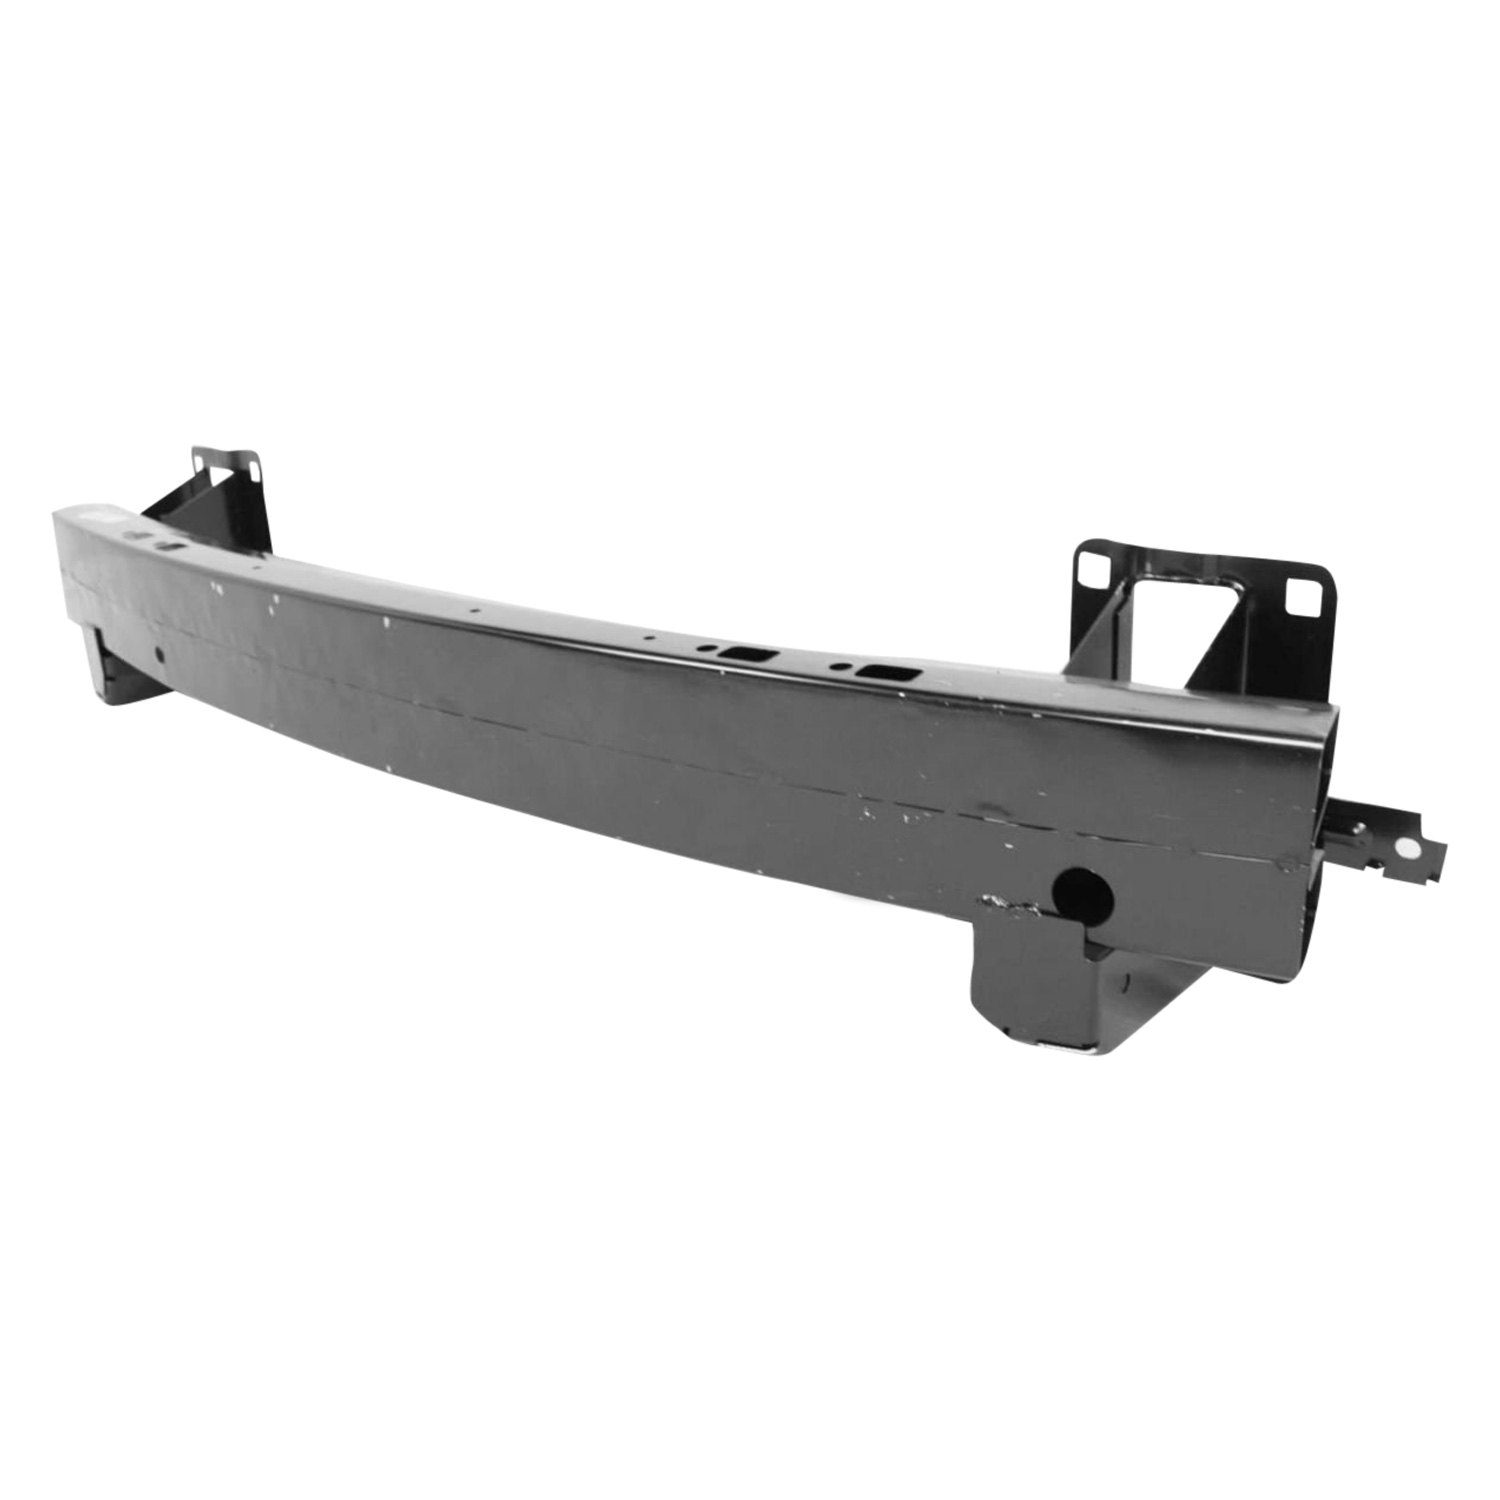 Chrysler 200 2011-2014 Front Bumper Reinforcement